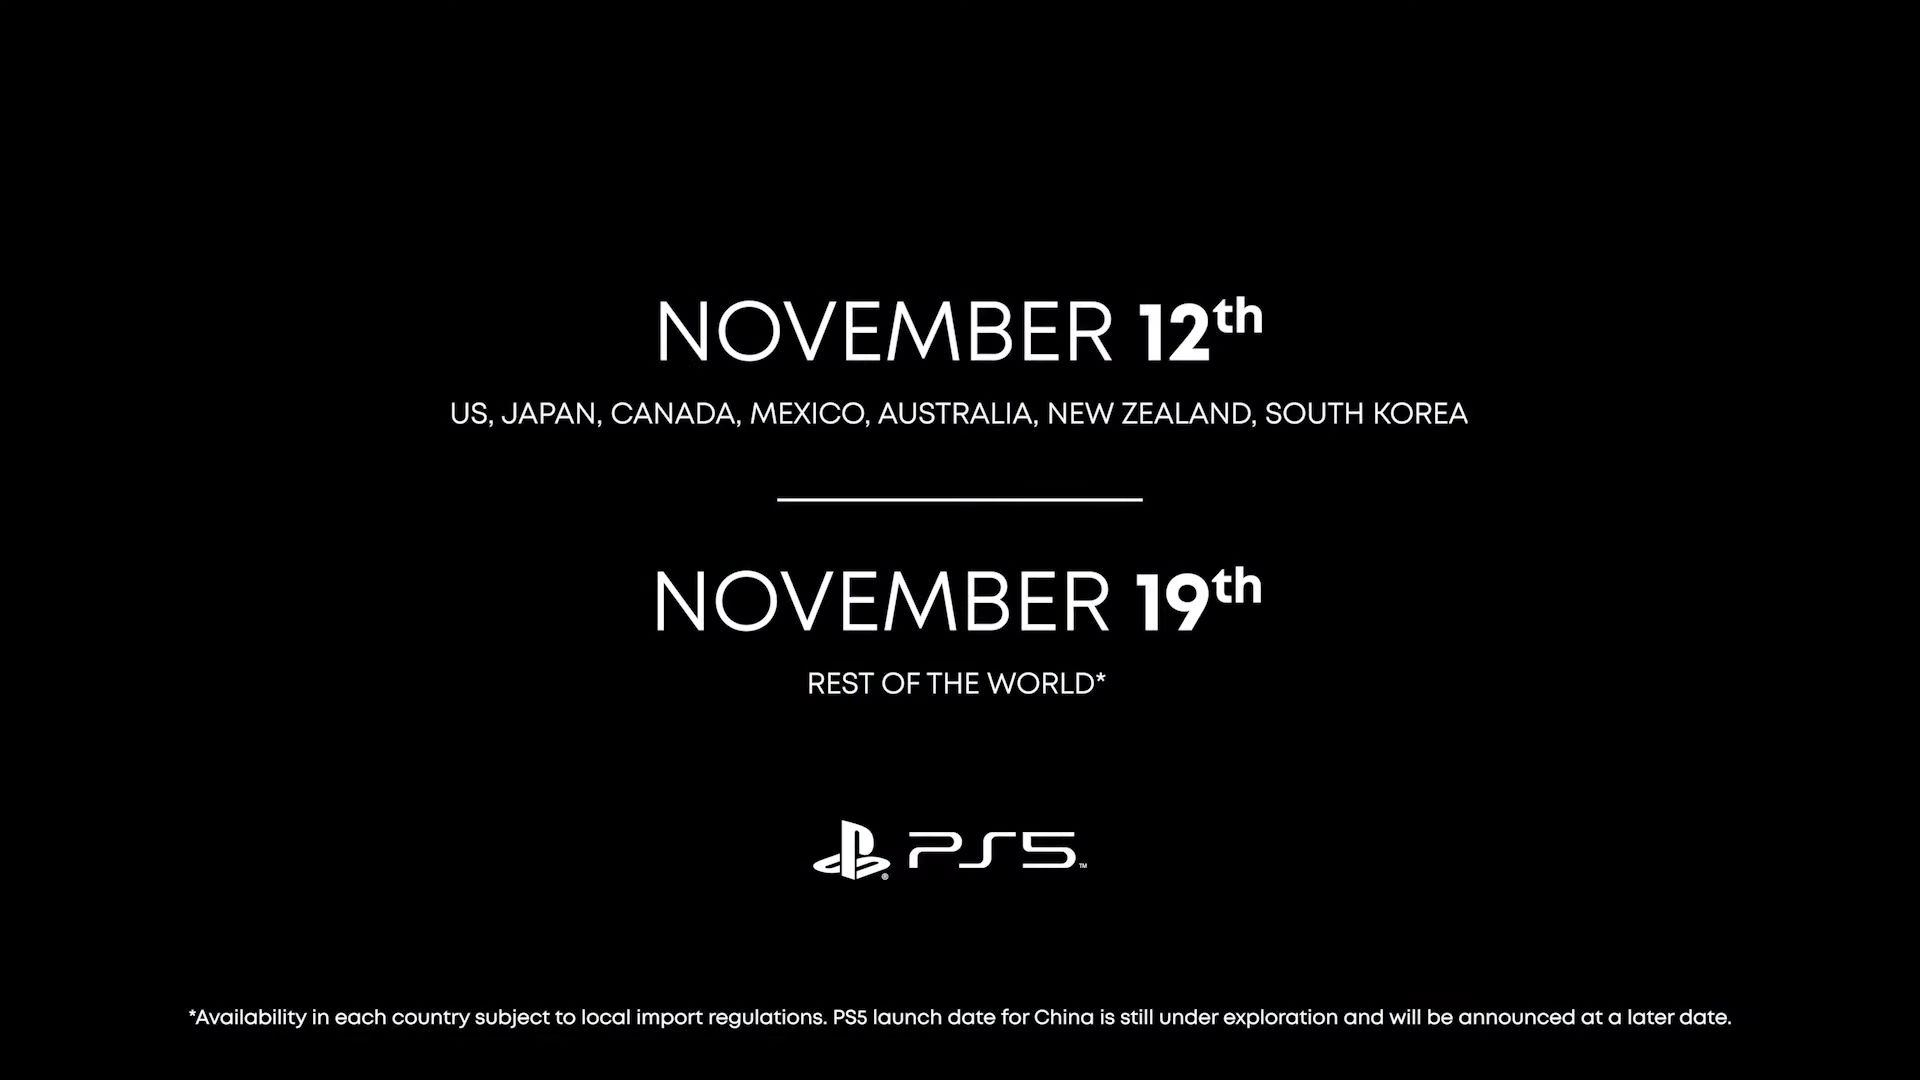 Sony Playstation 5 To Cost 499 Usd Coming November 12th Videocardz Com